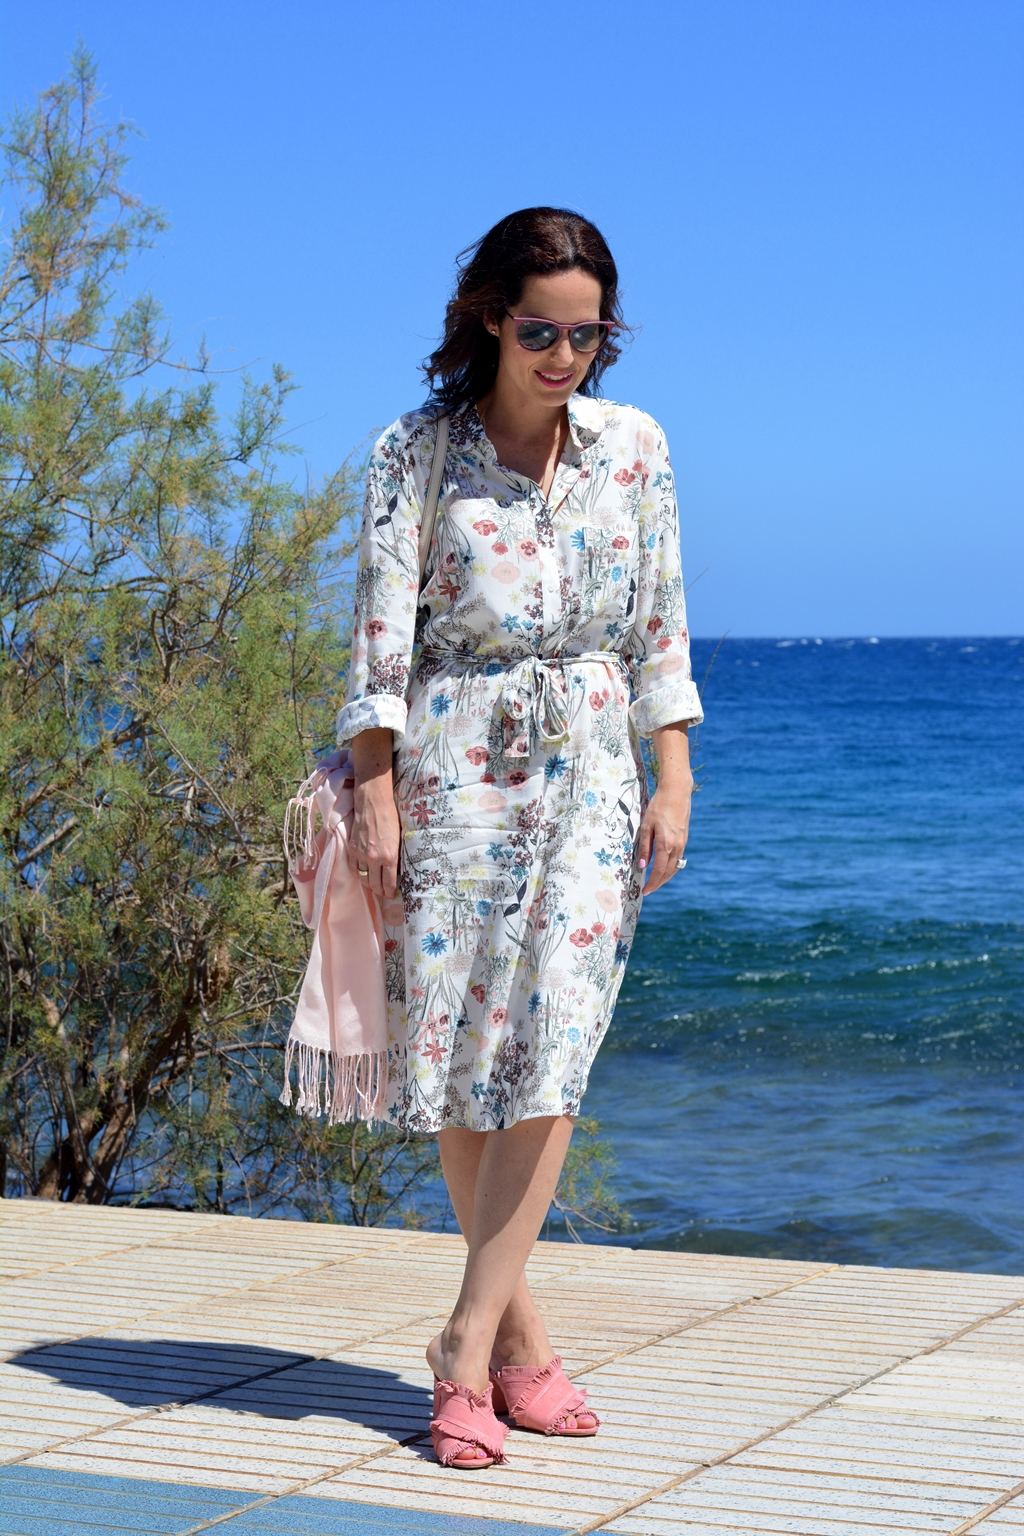 flower-dress-outfir-blogger-canaria